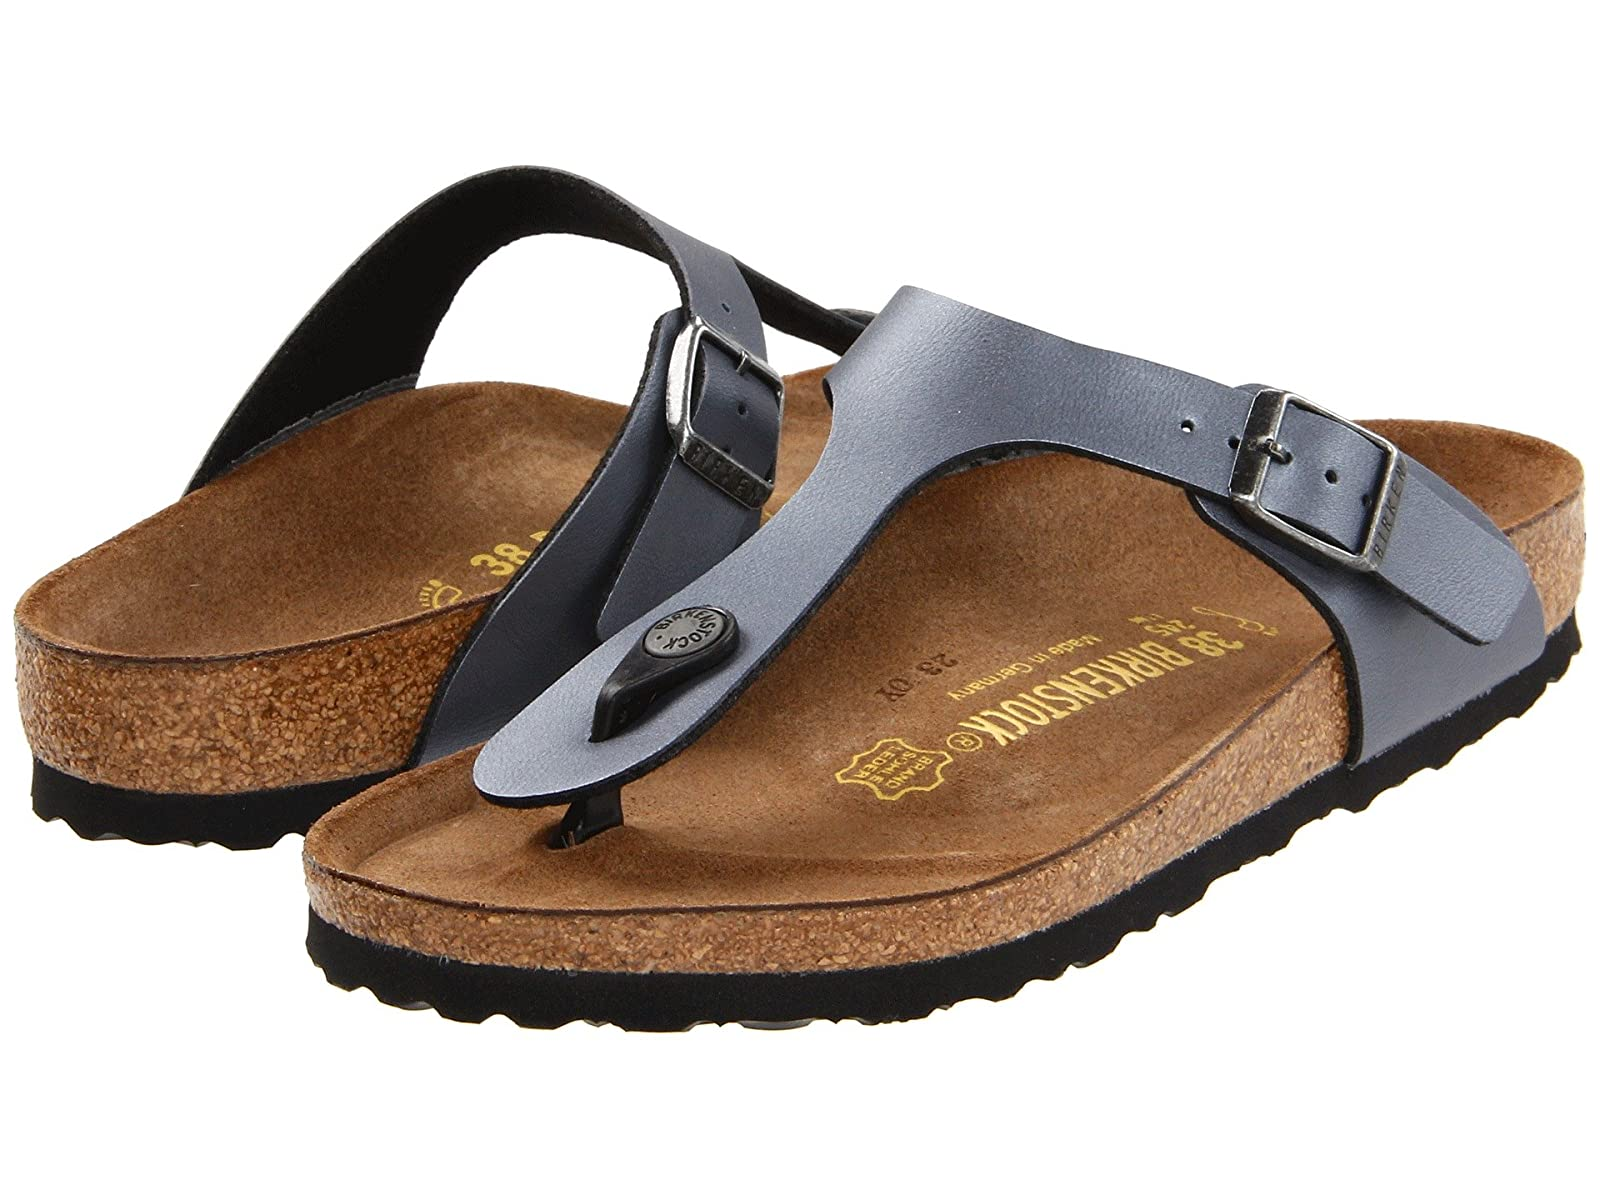 Birkenstock Gizeh Birko-Flor™Comfortable and distinctive shoes